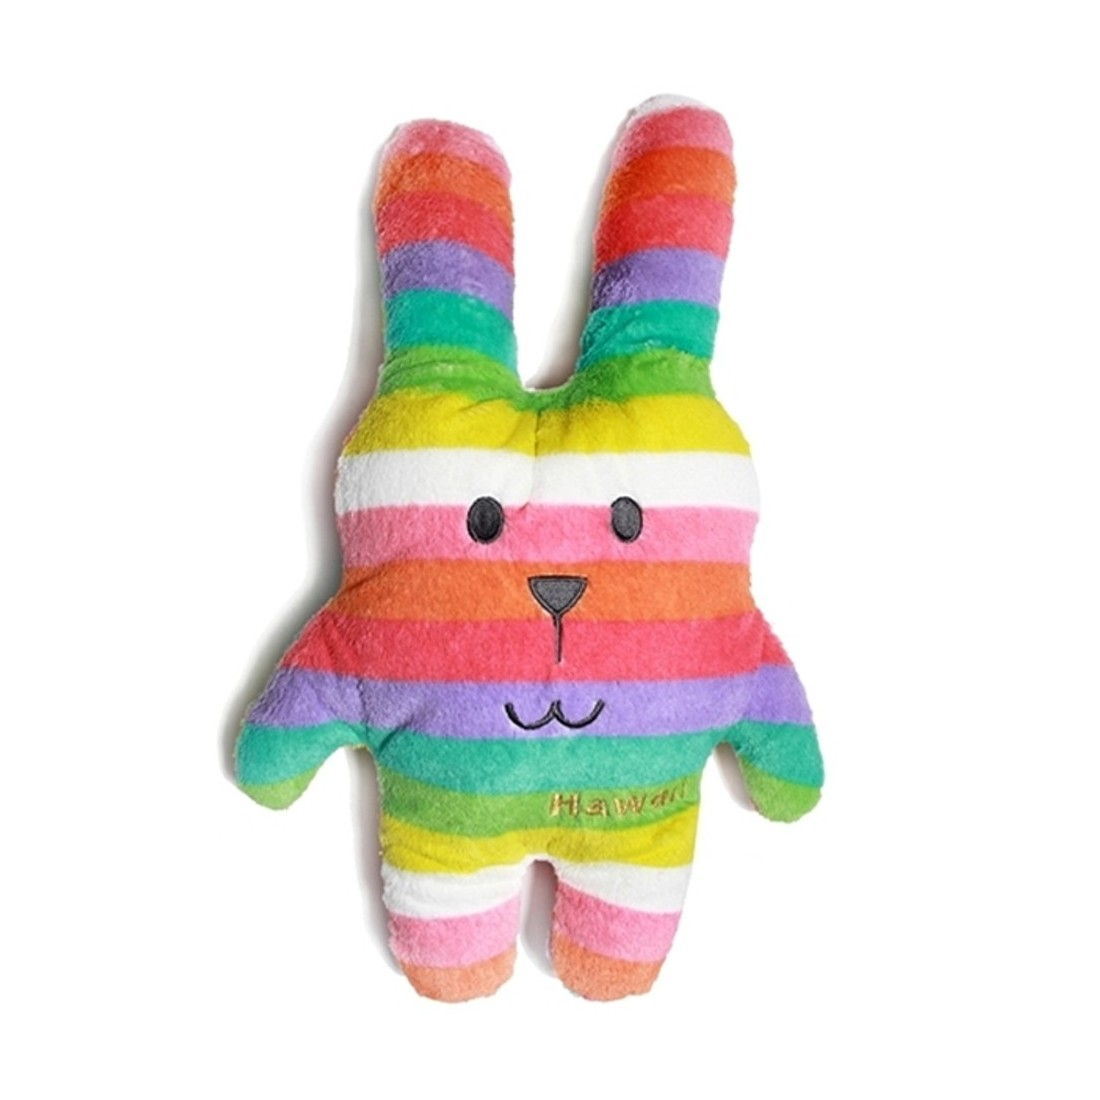 Peluche coussin lapin - Collection Hawaï